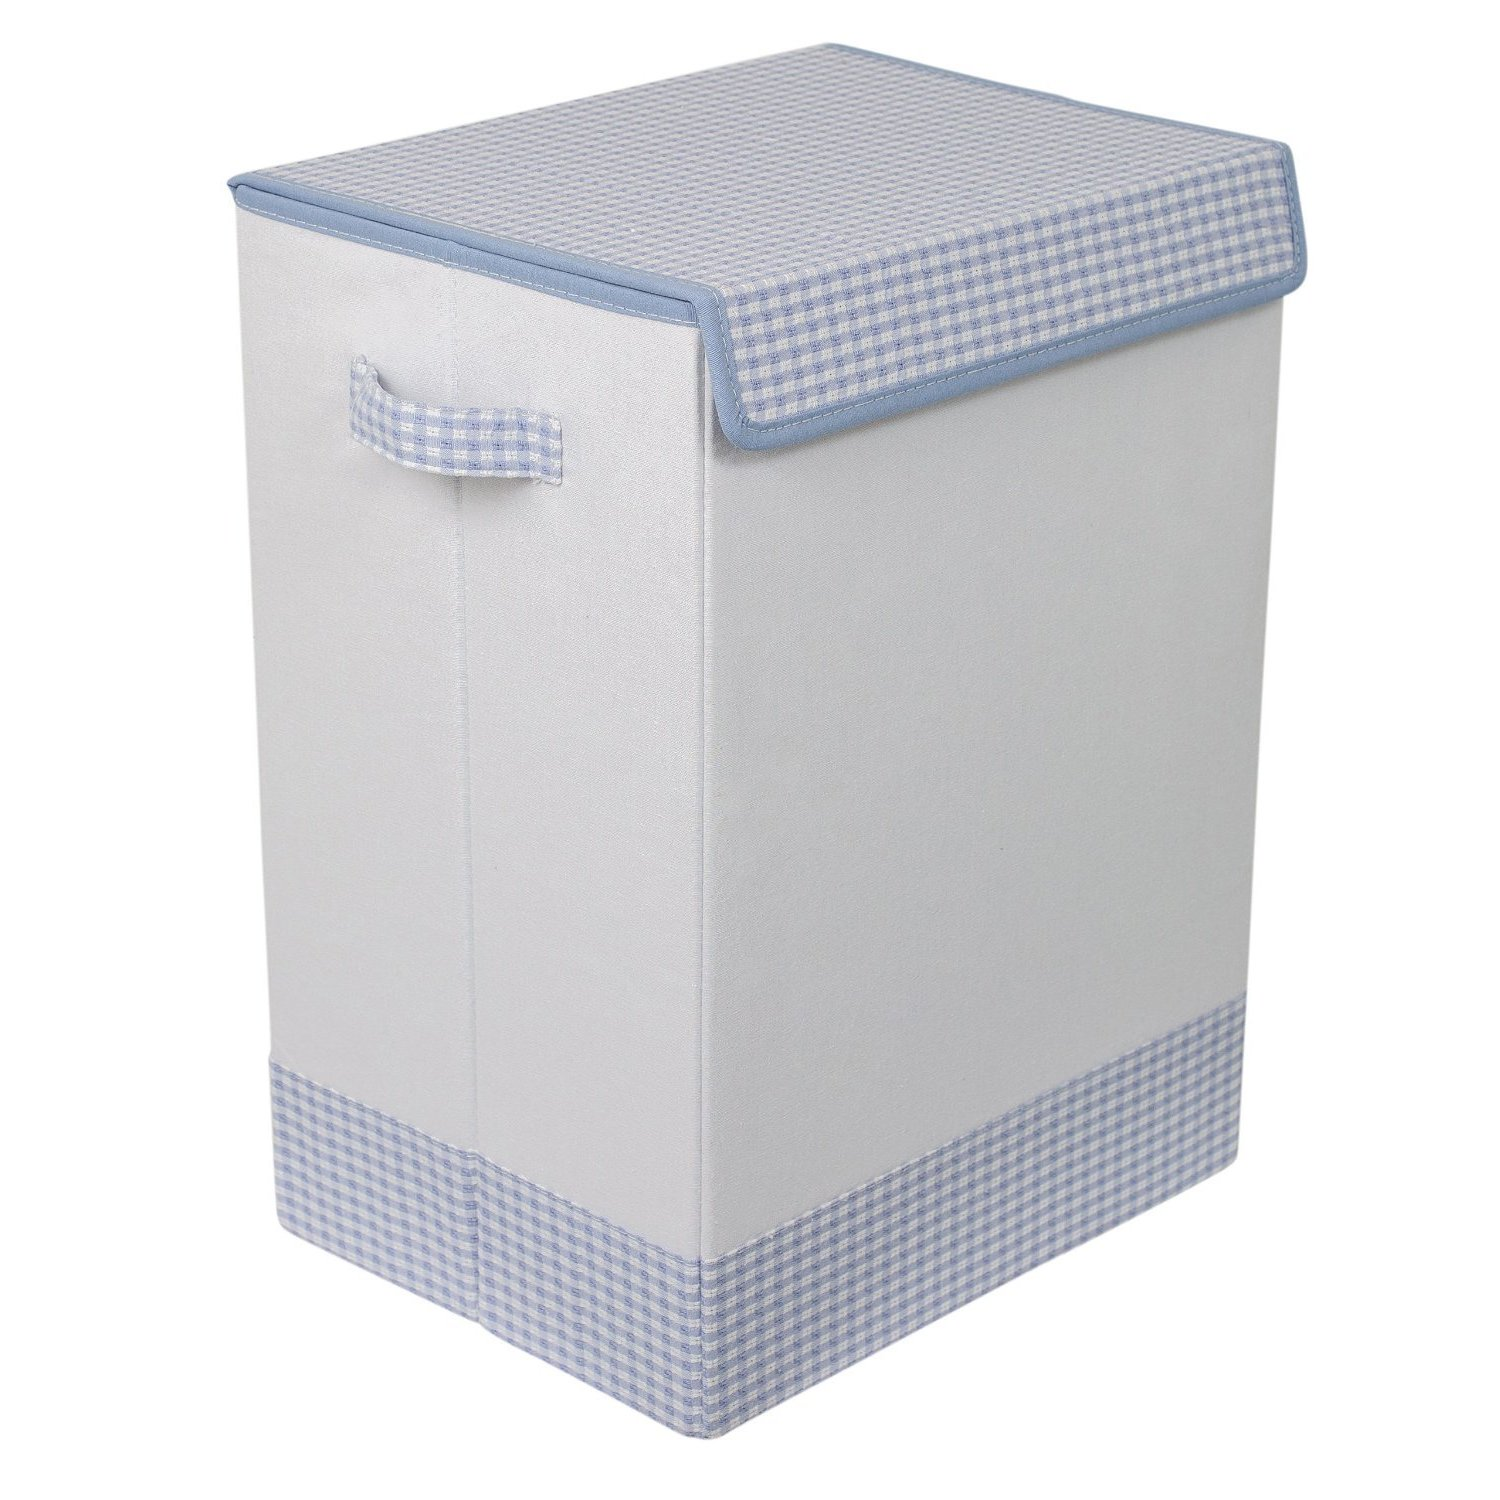 Birdrock Home Blue White Linen Baby Clothes Hamper With Lid Free Shipping On Orders Over 45 12334644